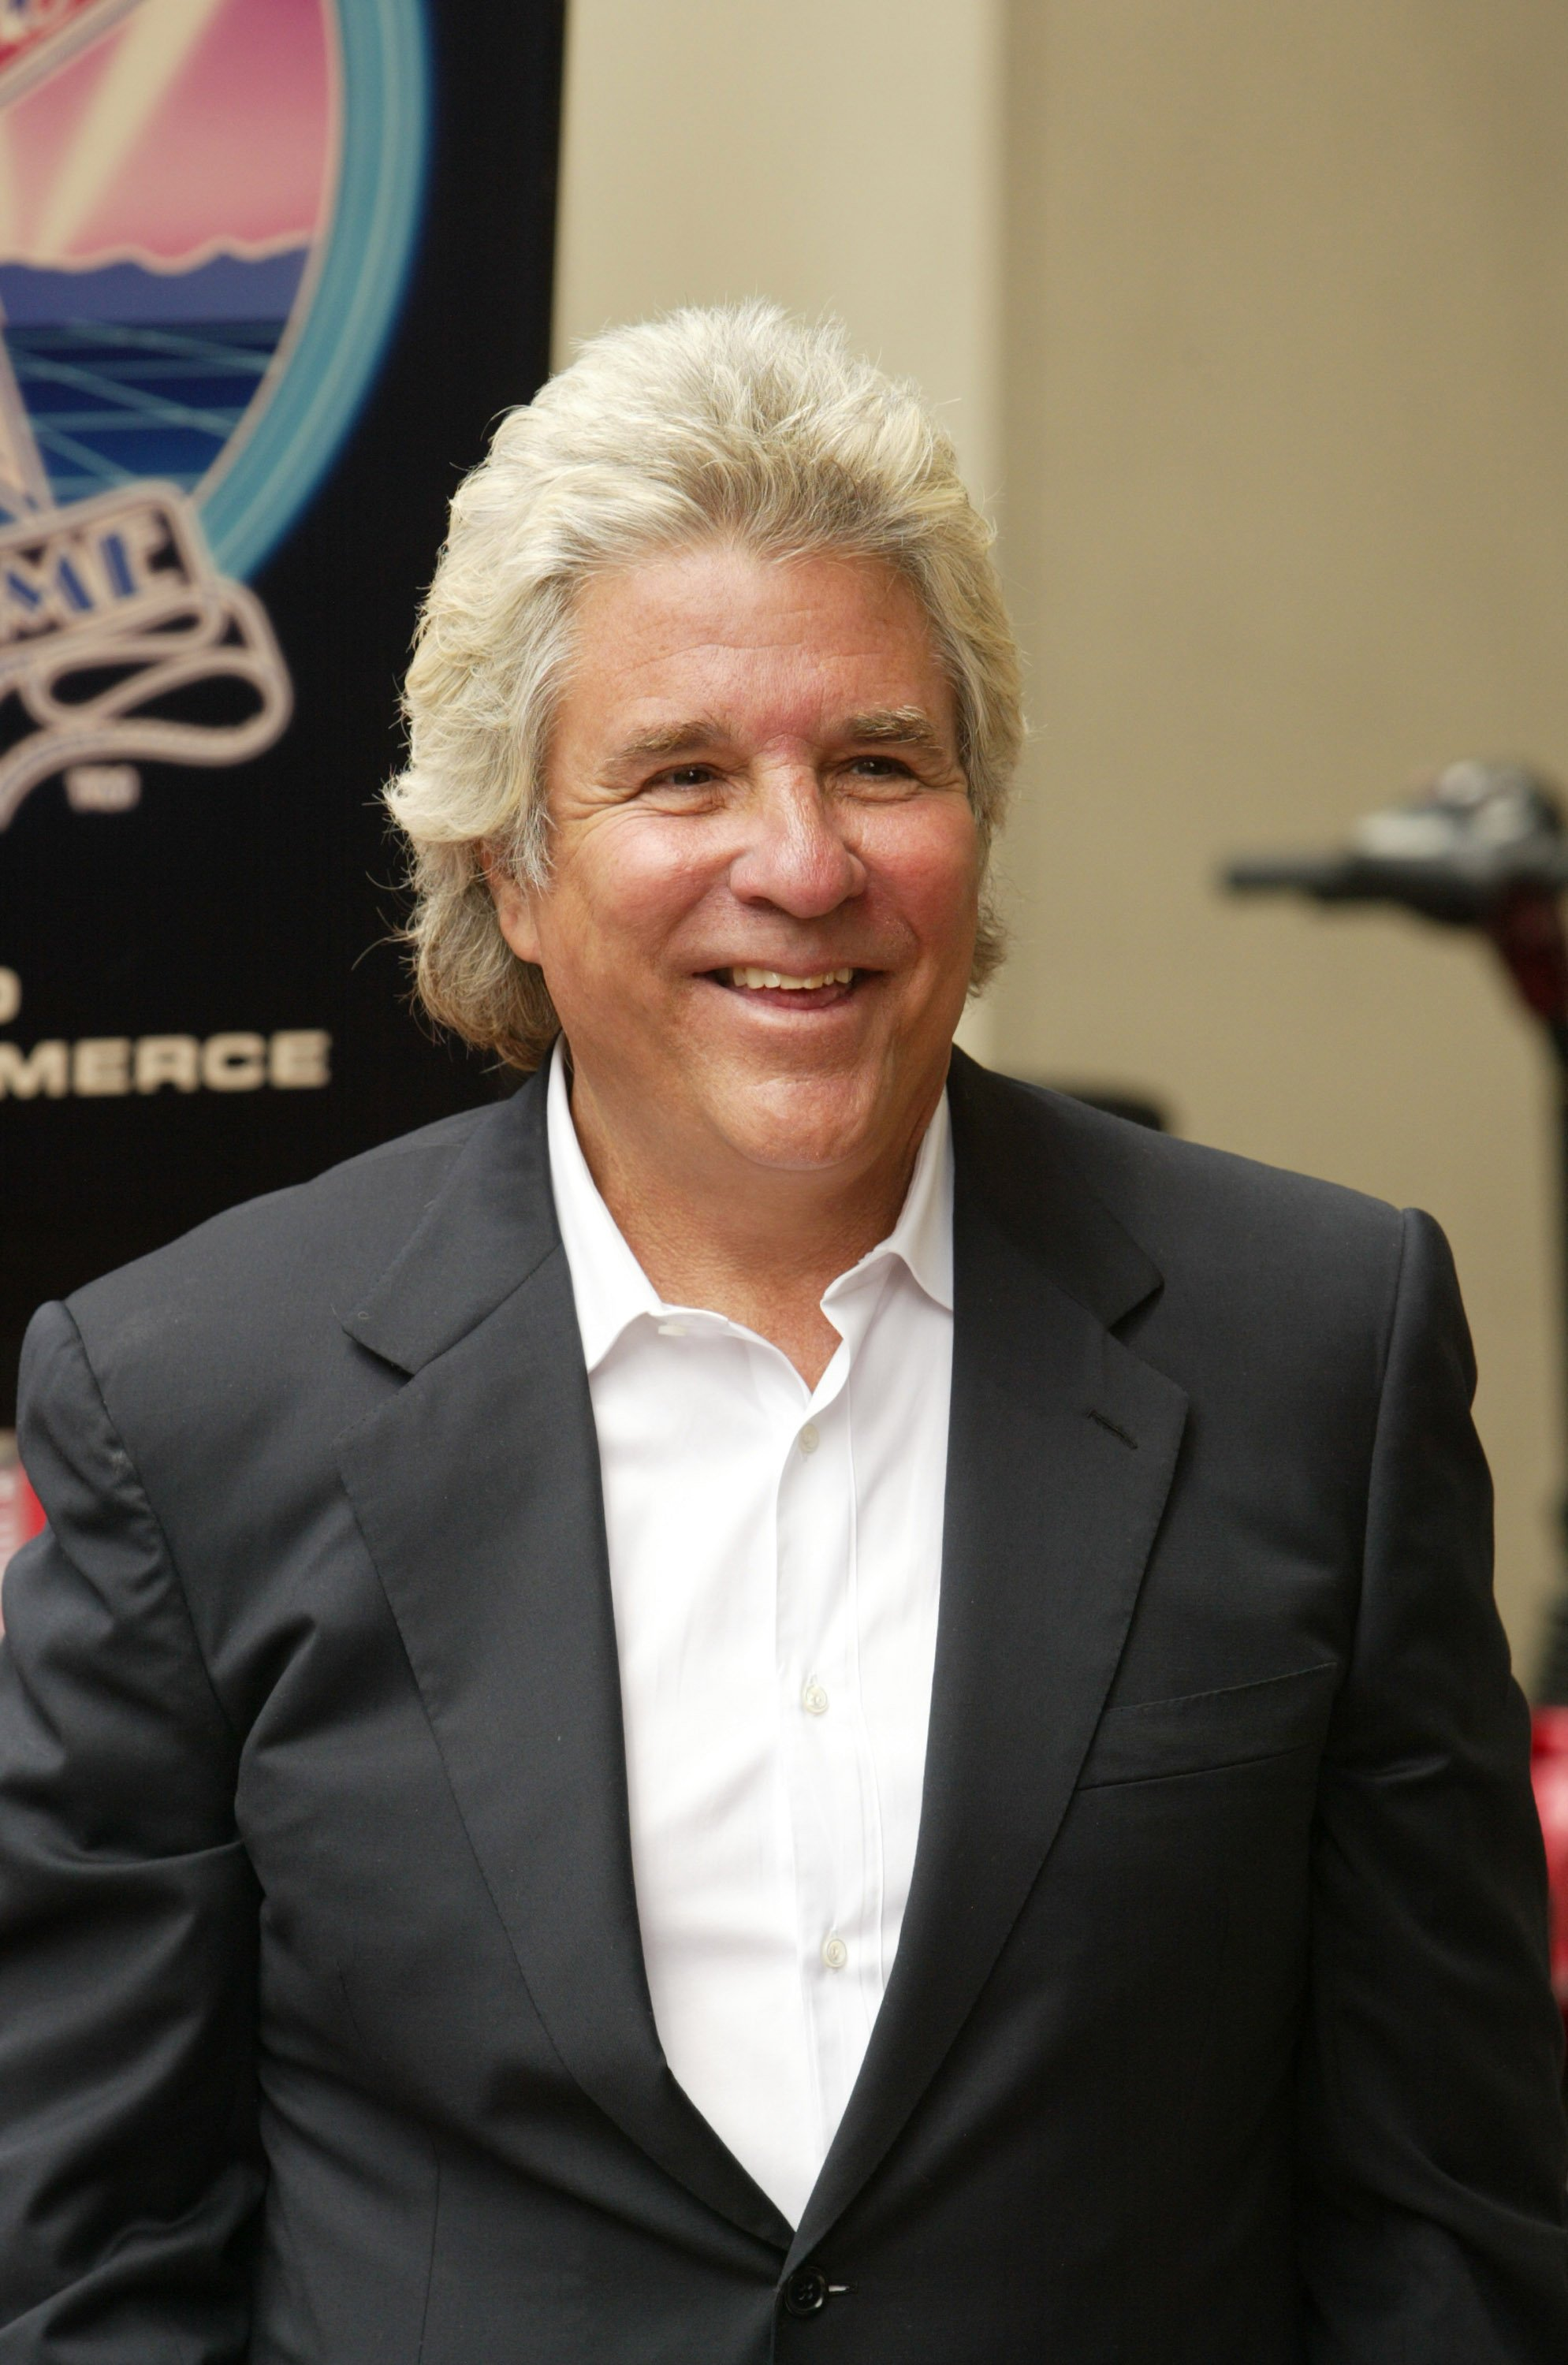 Jon Peters receives his star on the walk of fame in May 2007. | Source: Getty Images.